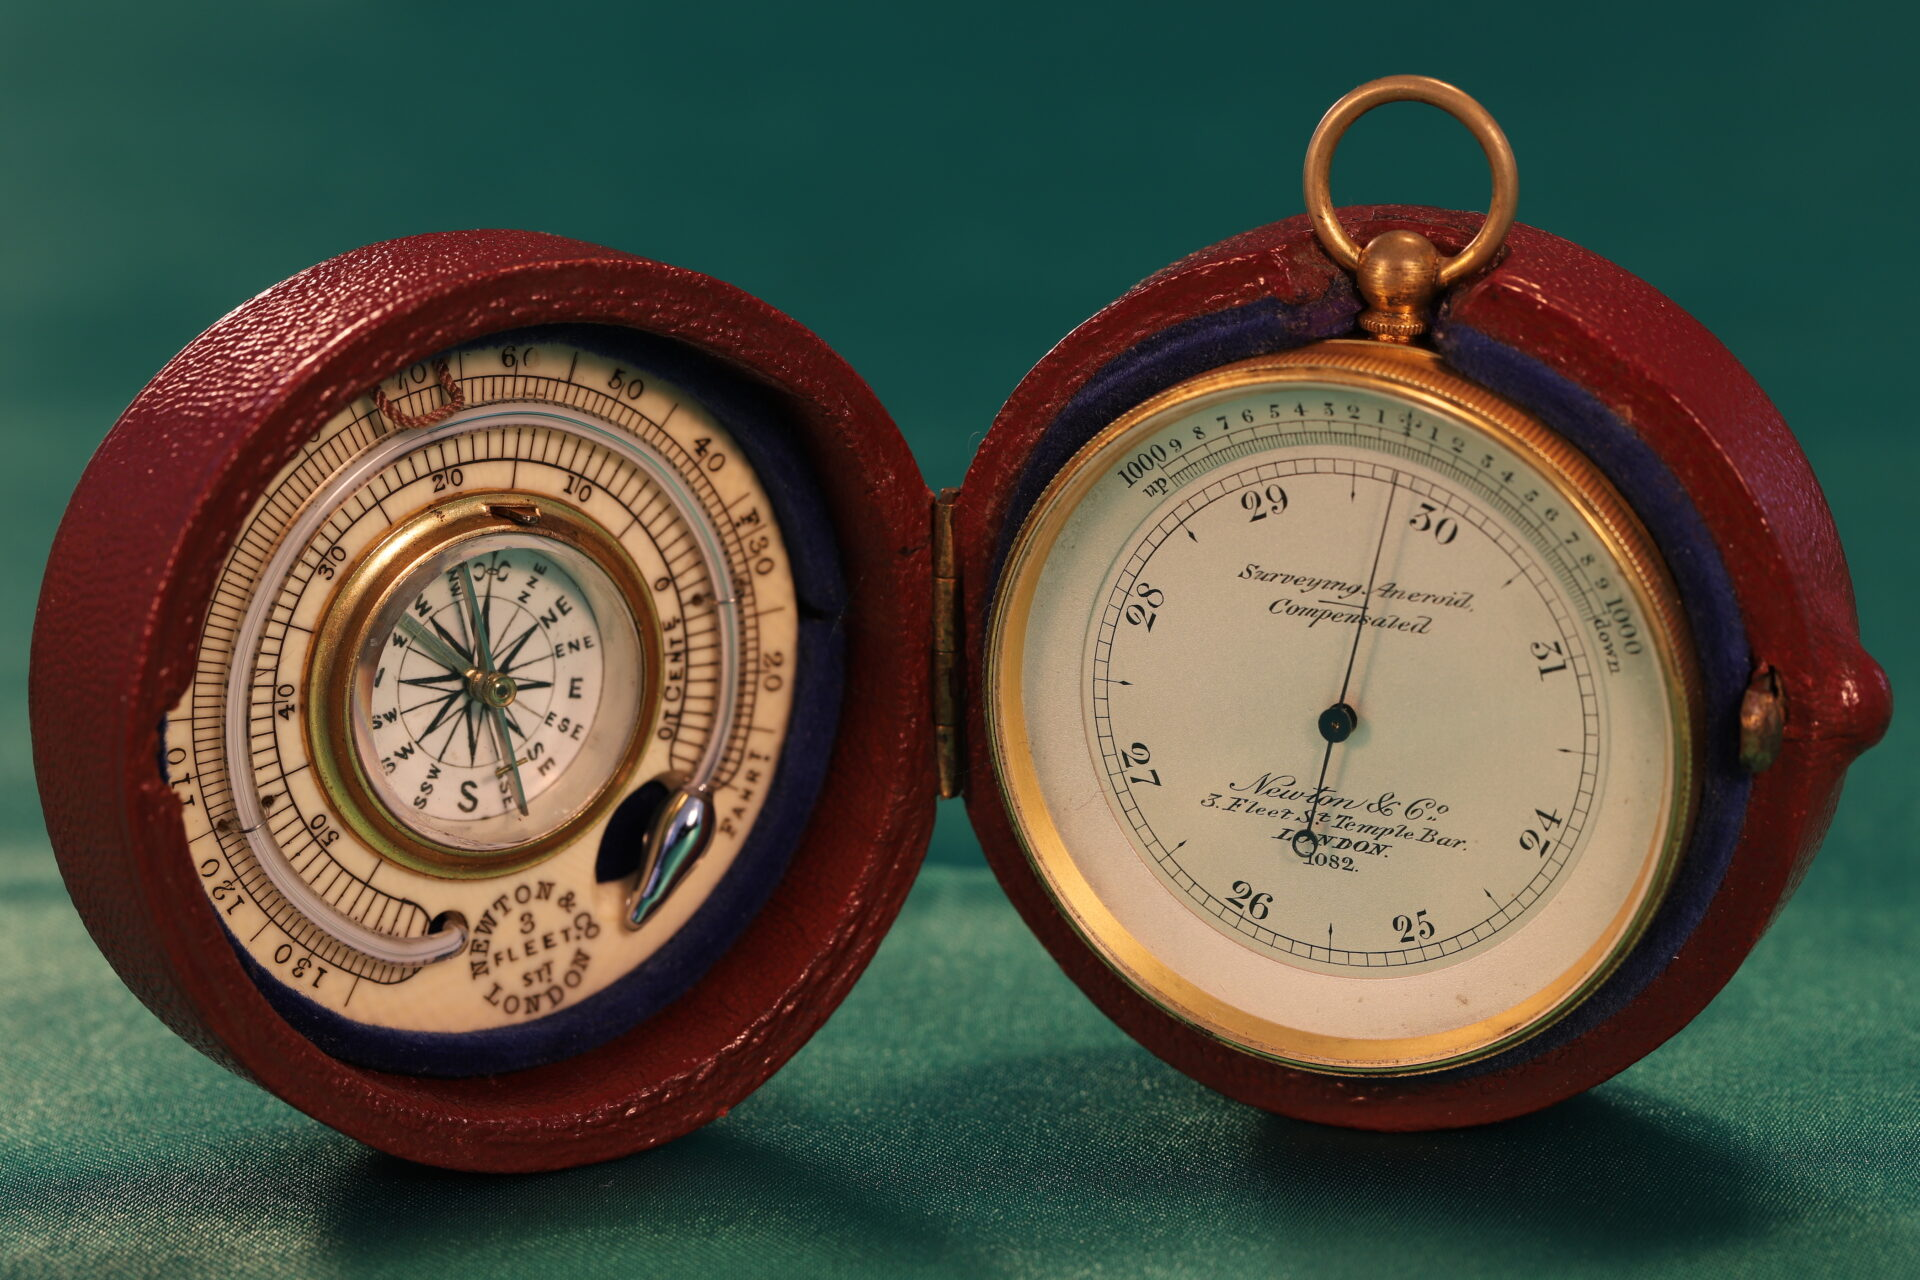 Image of Newton Pocket Barometer Compendium No 1082 in open case with compass and thermometer on left